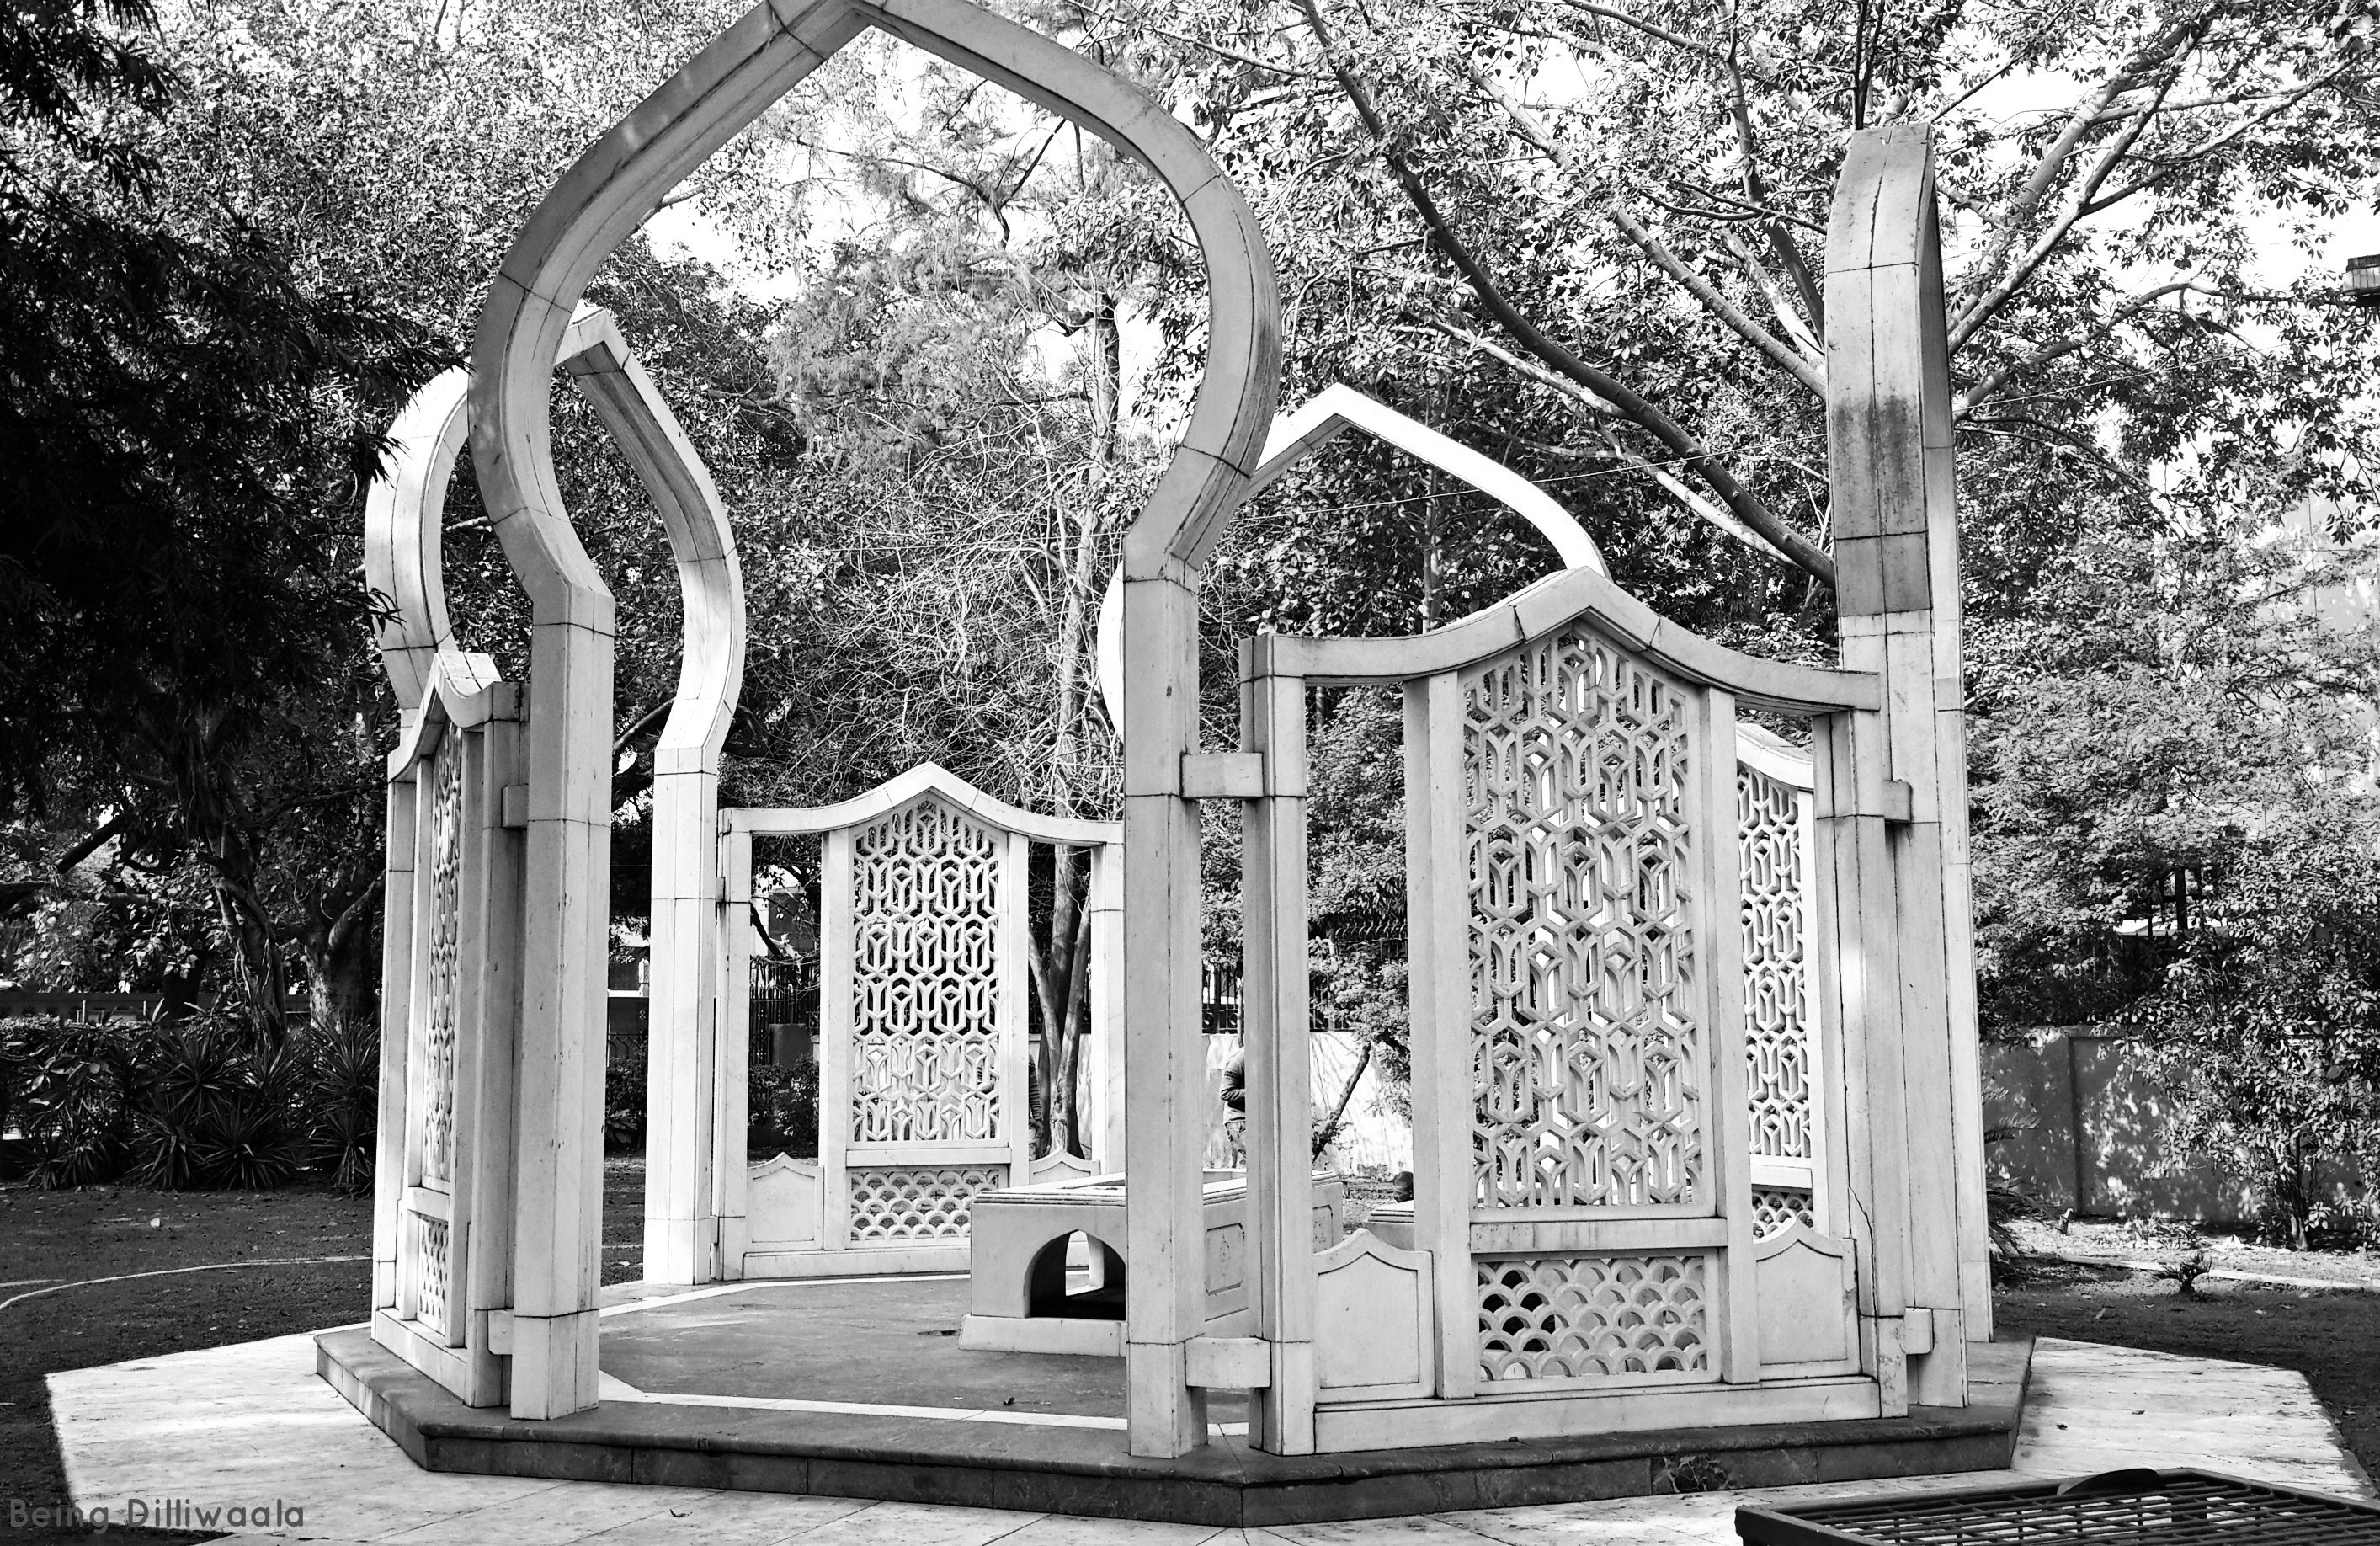 A journey of 100 years of Architecture in India | Part 02 - 1975 Mazar Of President Fakhruddin Ali Ahmed New Delhi